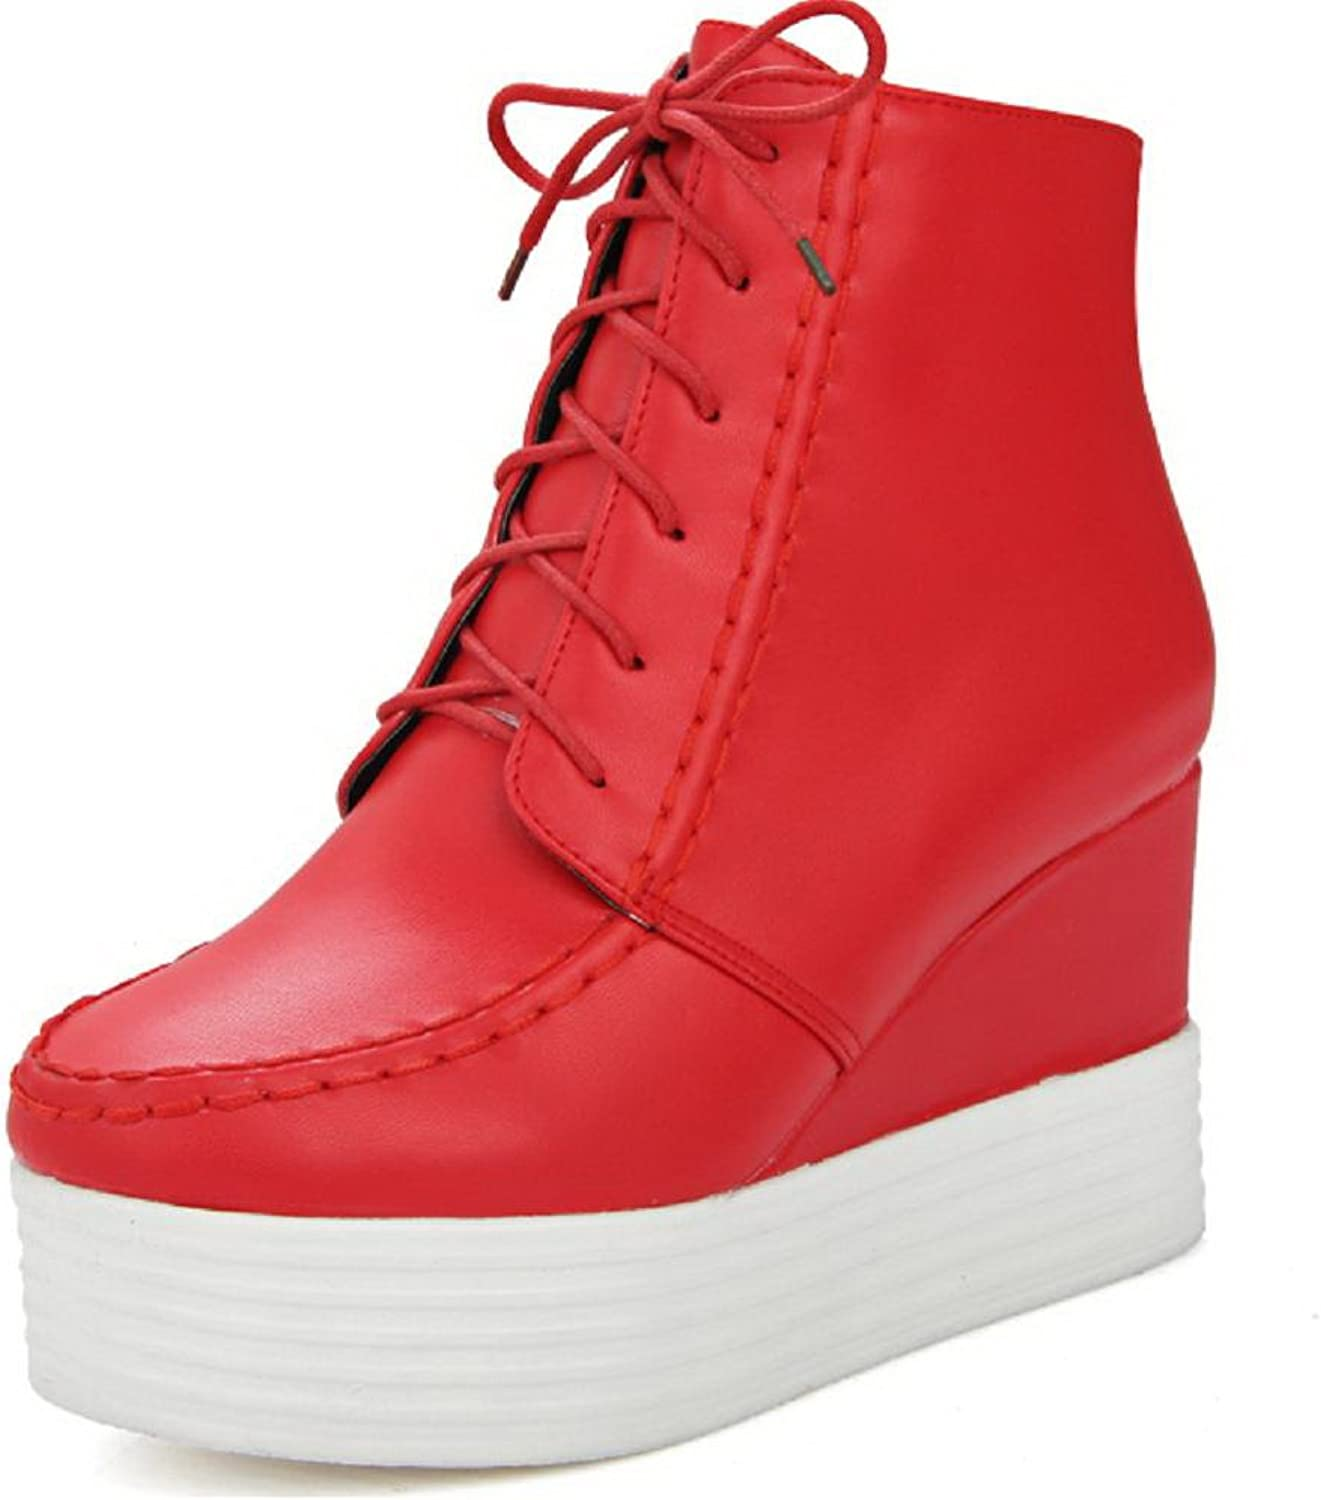 AllhqFashion Women's Soft Material Round Closed Toe Solid Low Top High Heels Boots